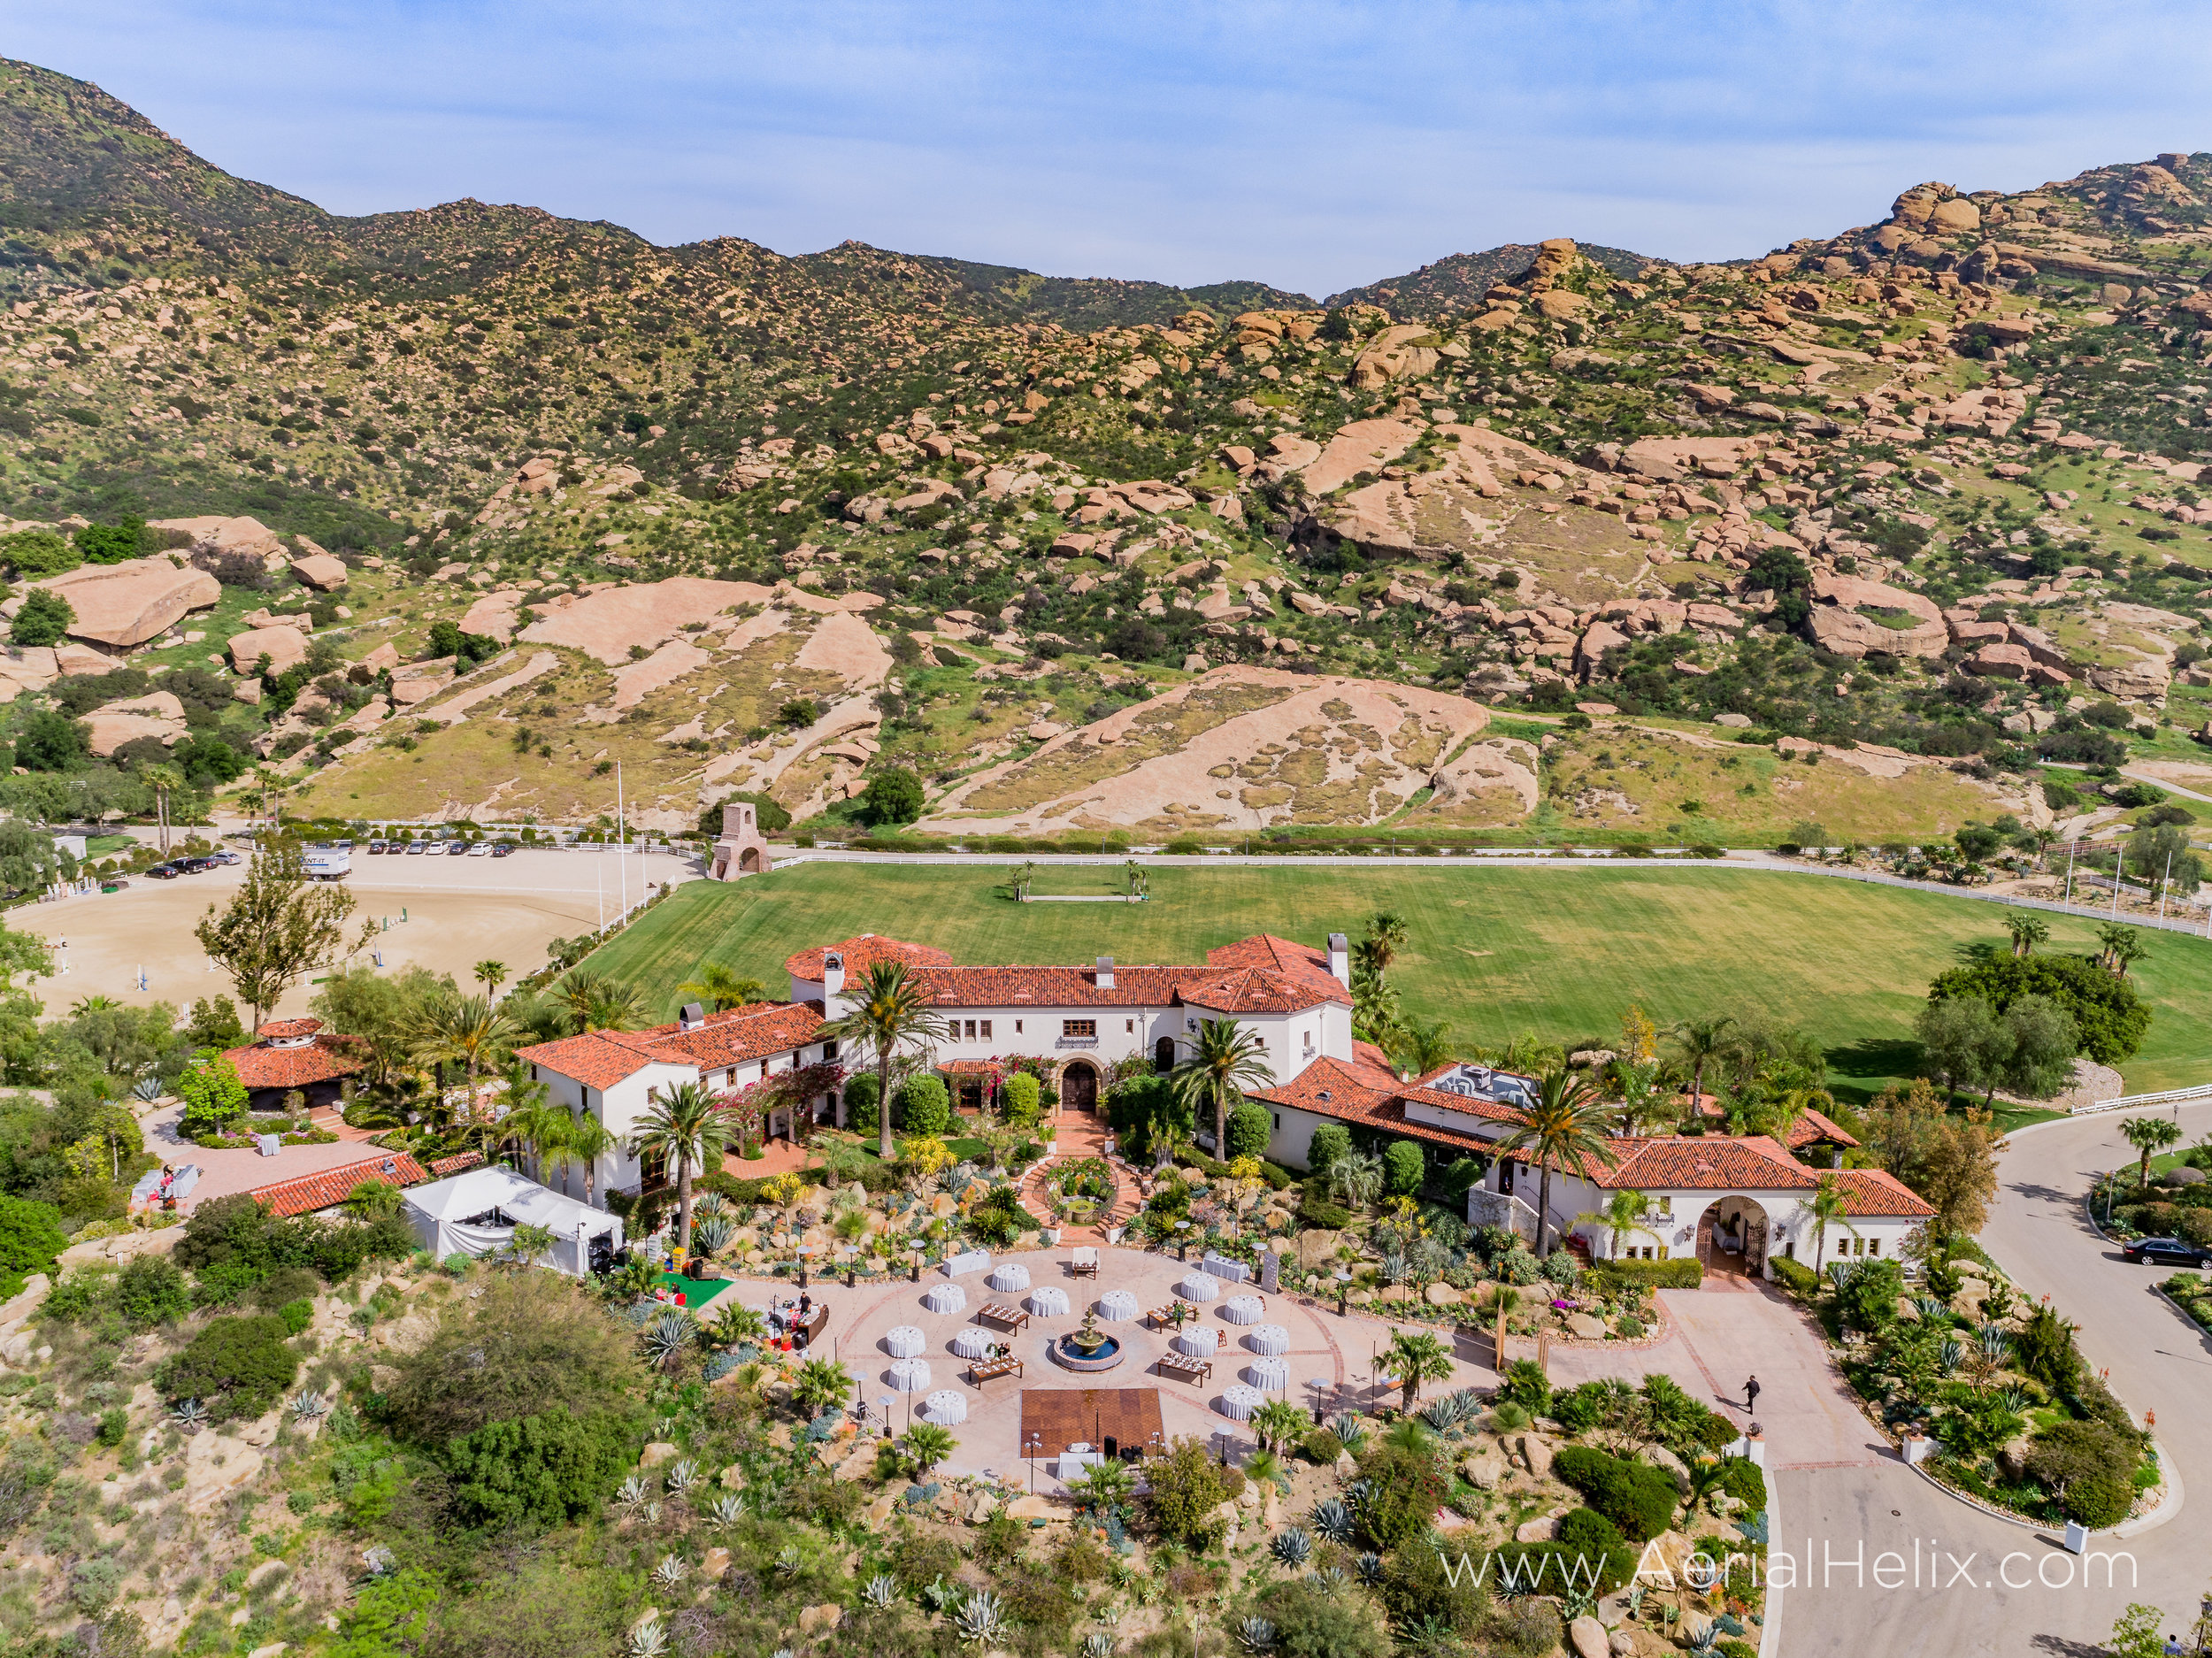 HELIX - Hummingbird Wedding - Aerial Photographer-5.jpg